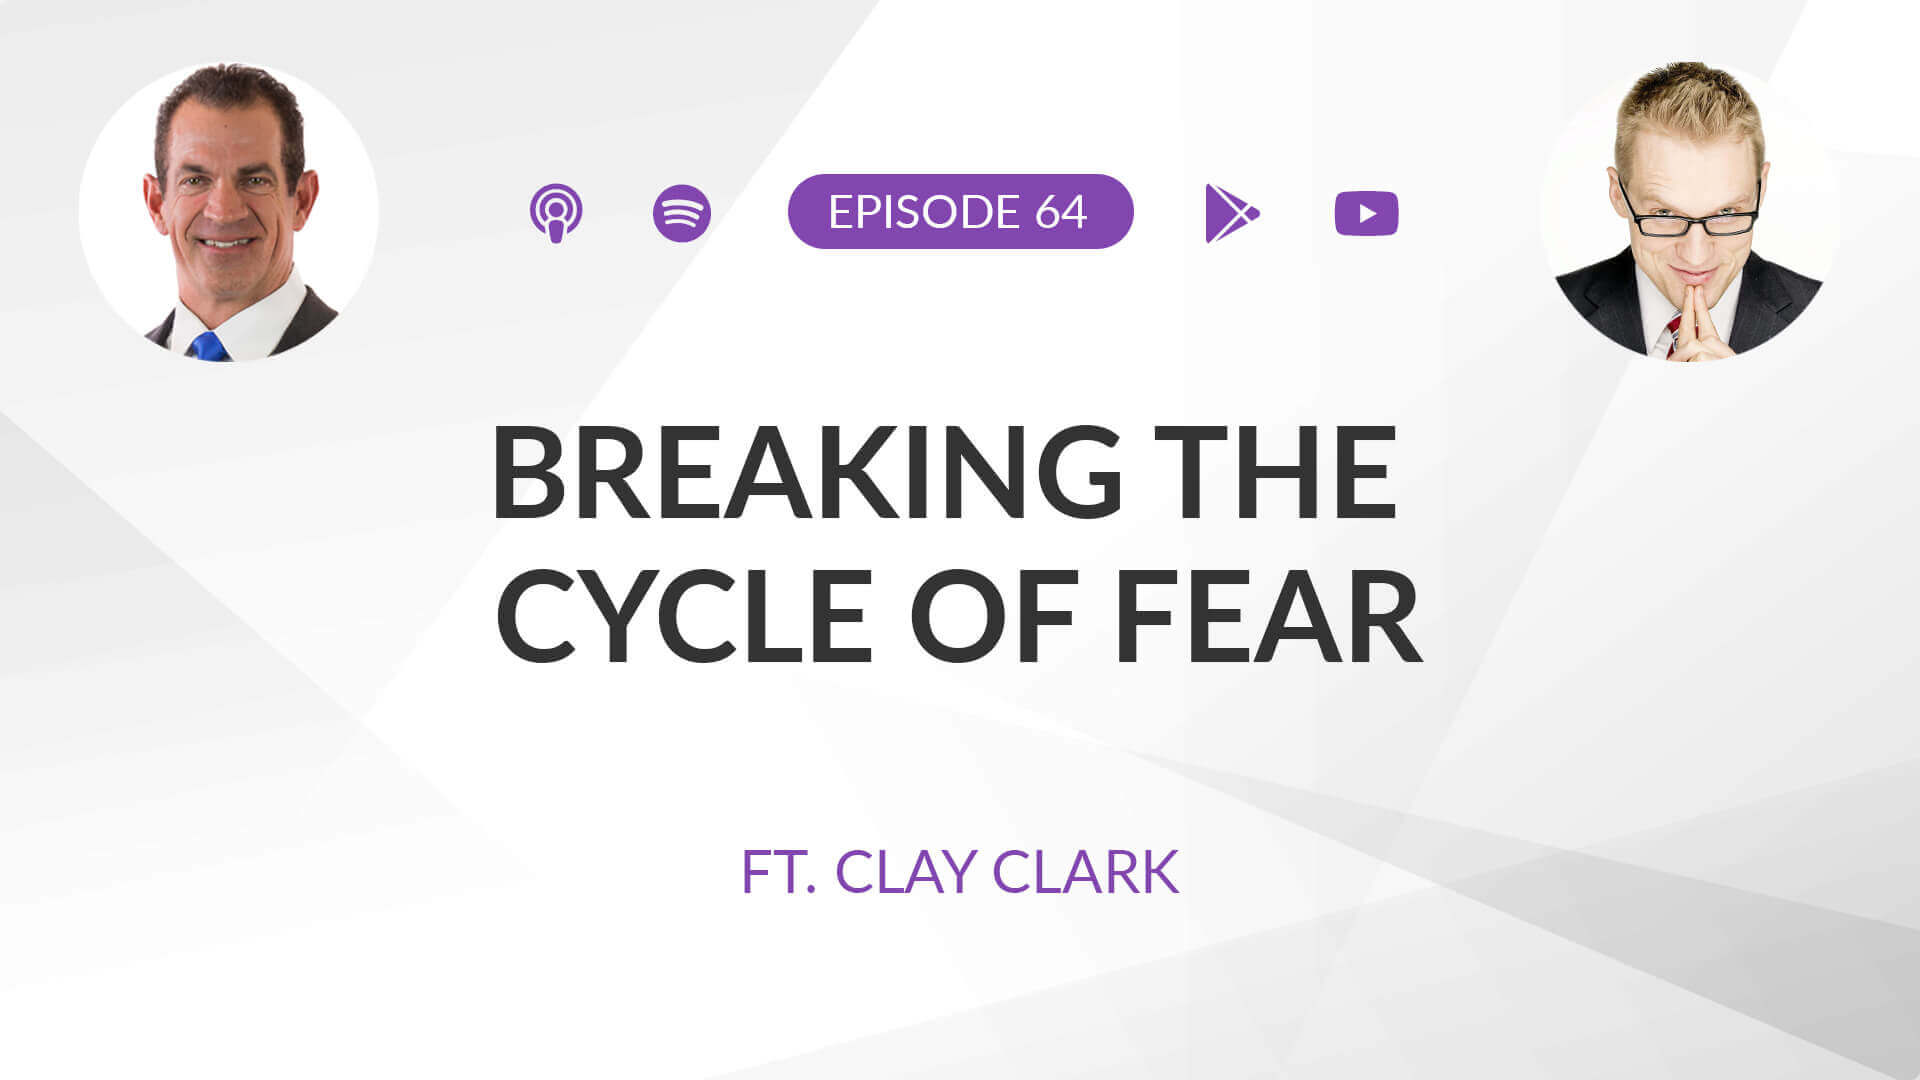 Ep 64: Breaking the Cycle of Fear ft. Clay Clark